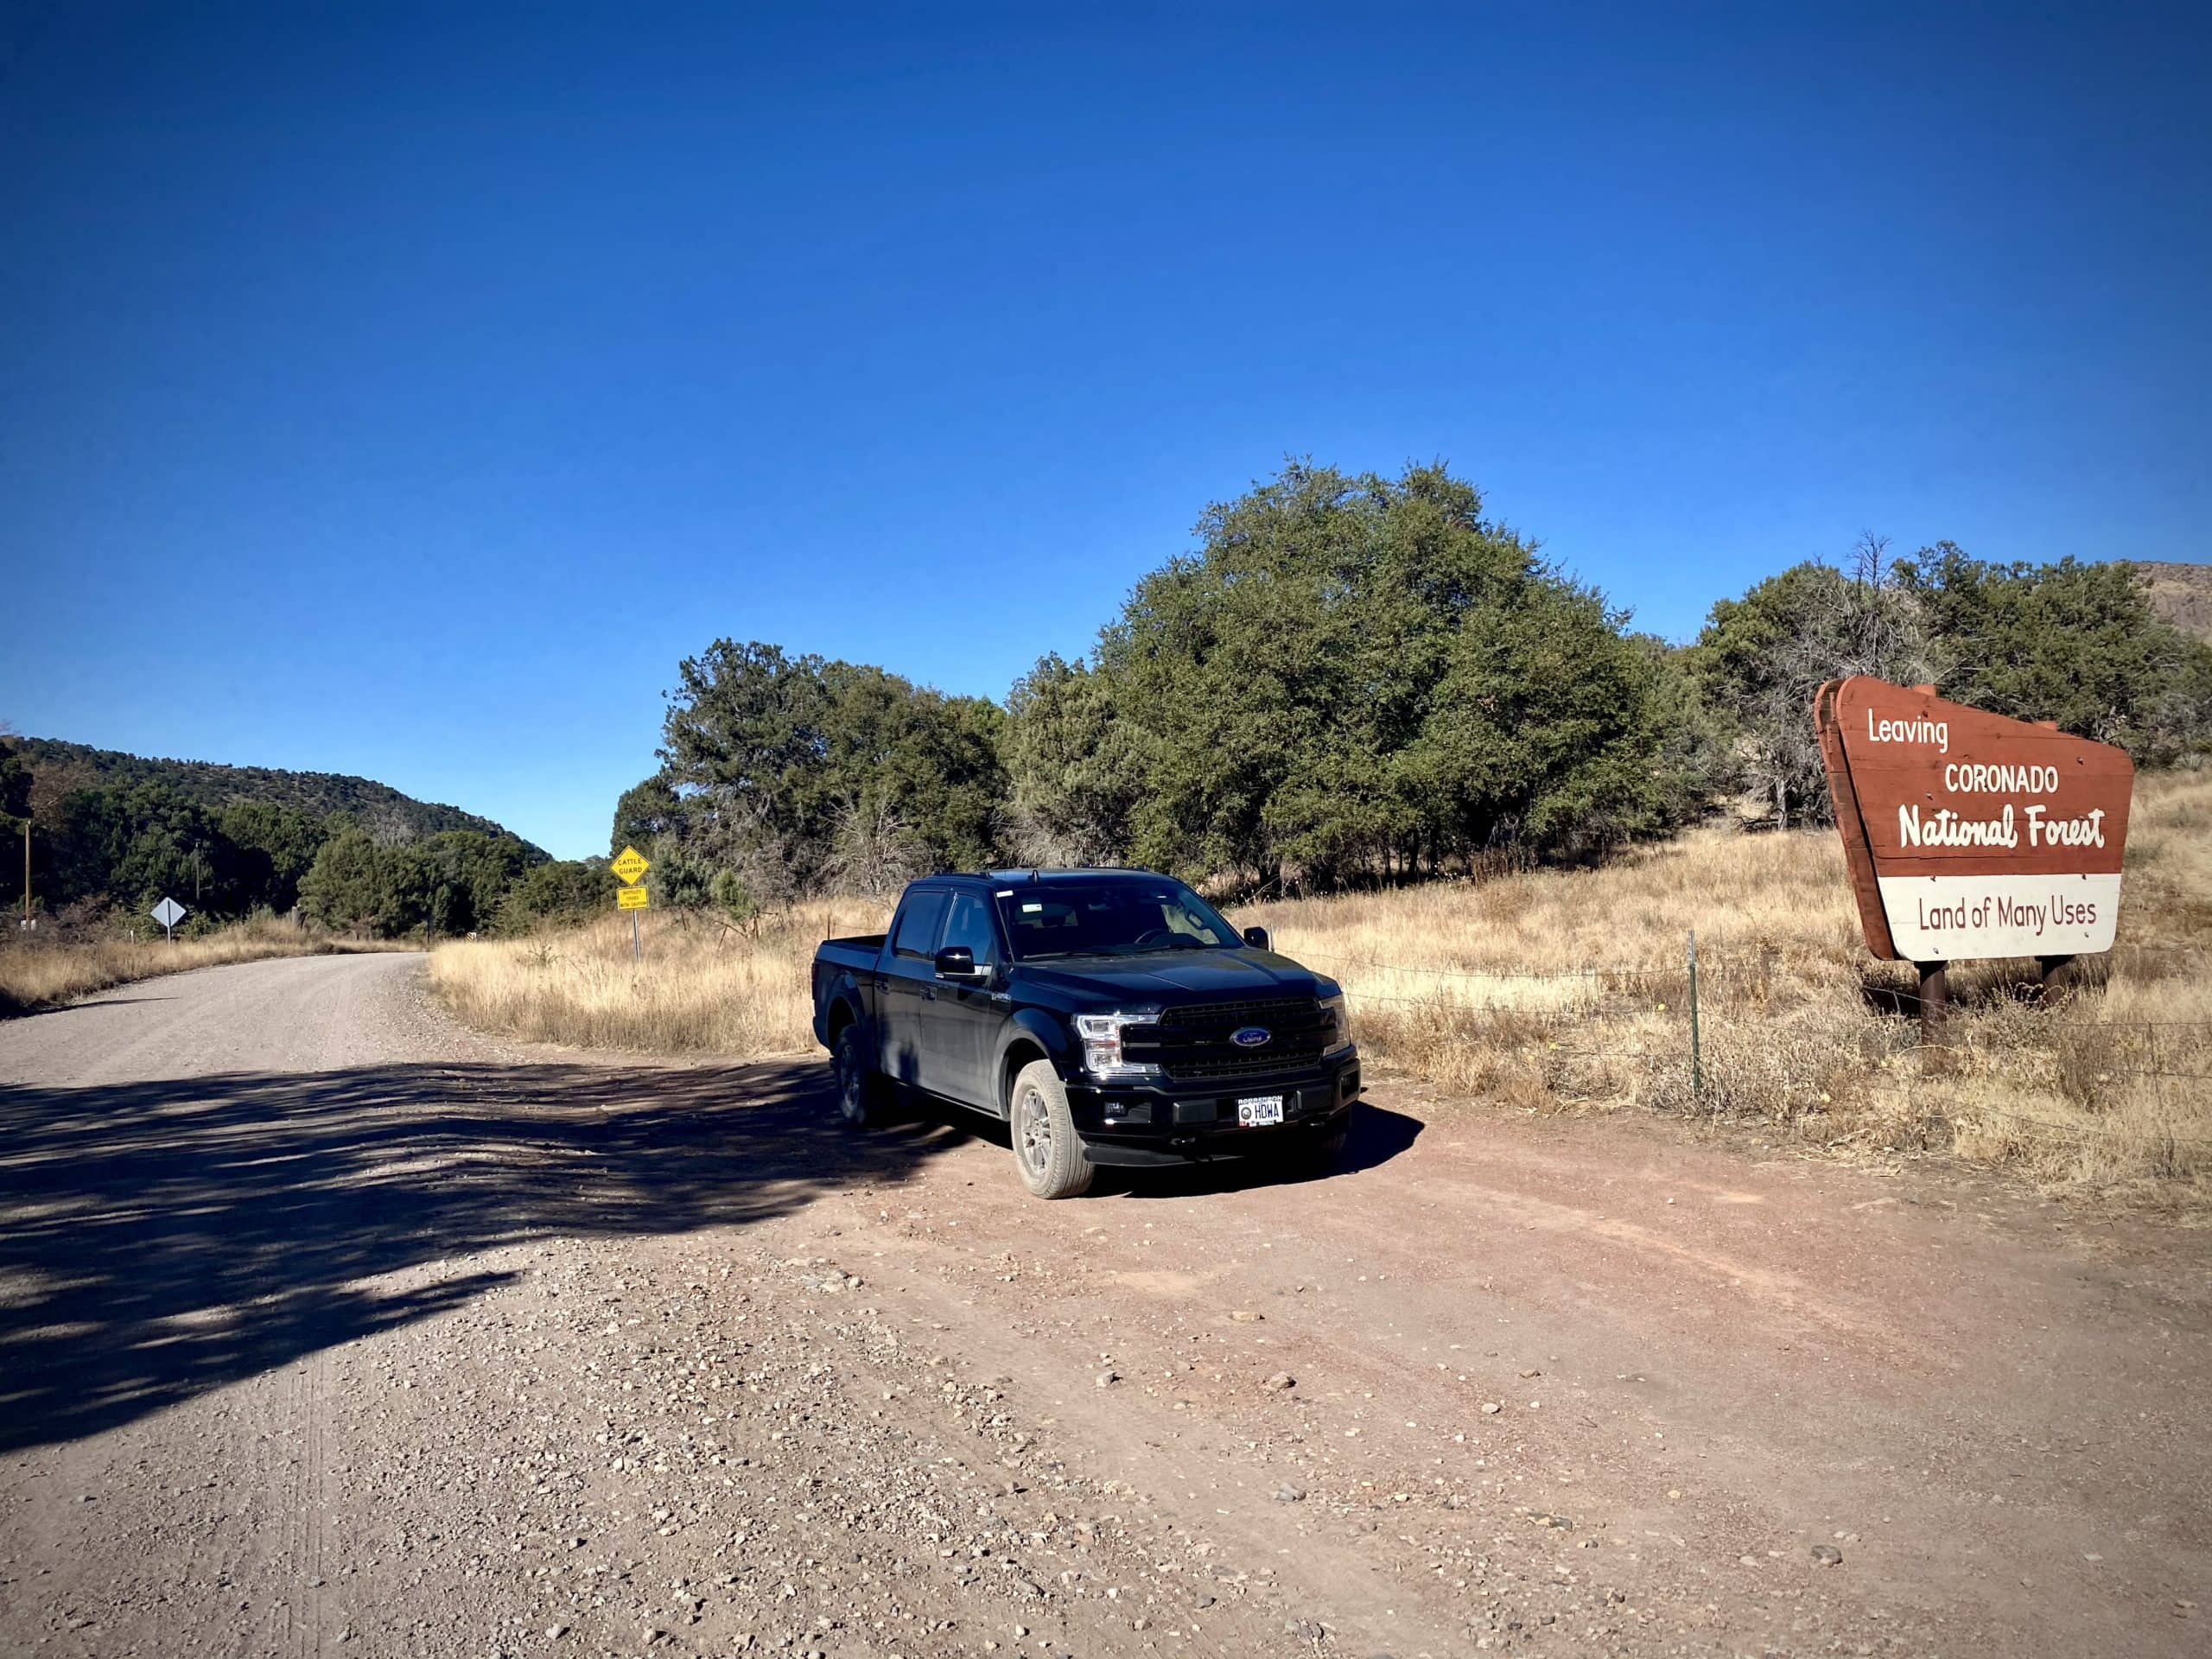 Ford F150 truck parked on dirt road at sign for Coronado National Forest in the Chiricahua Mountains.